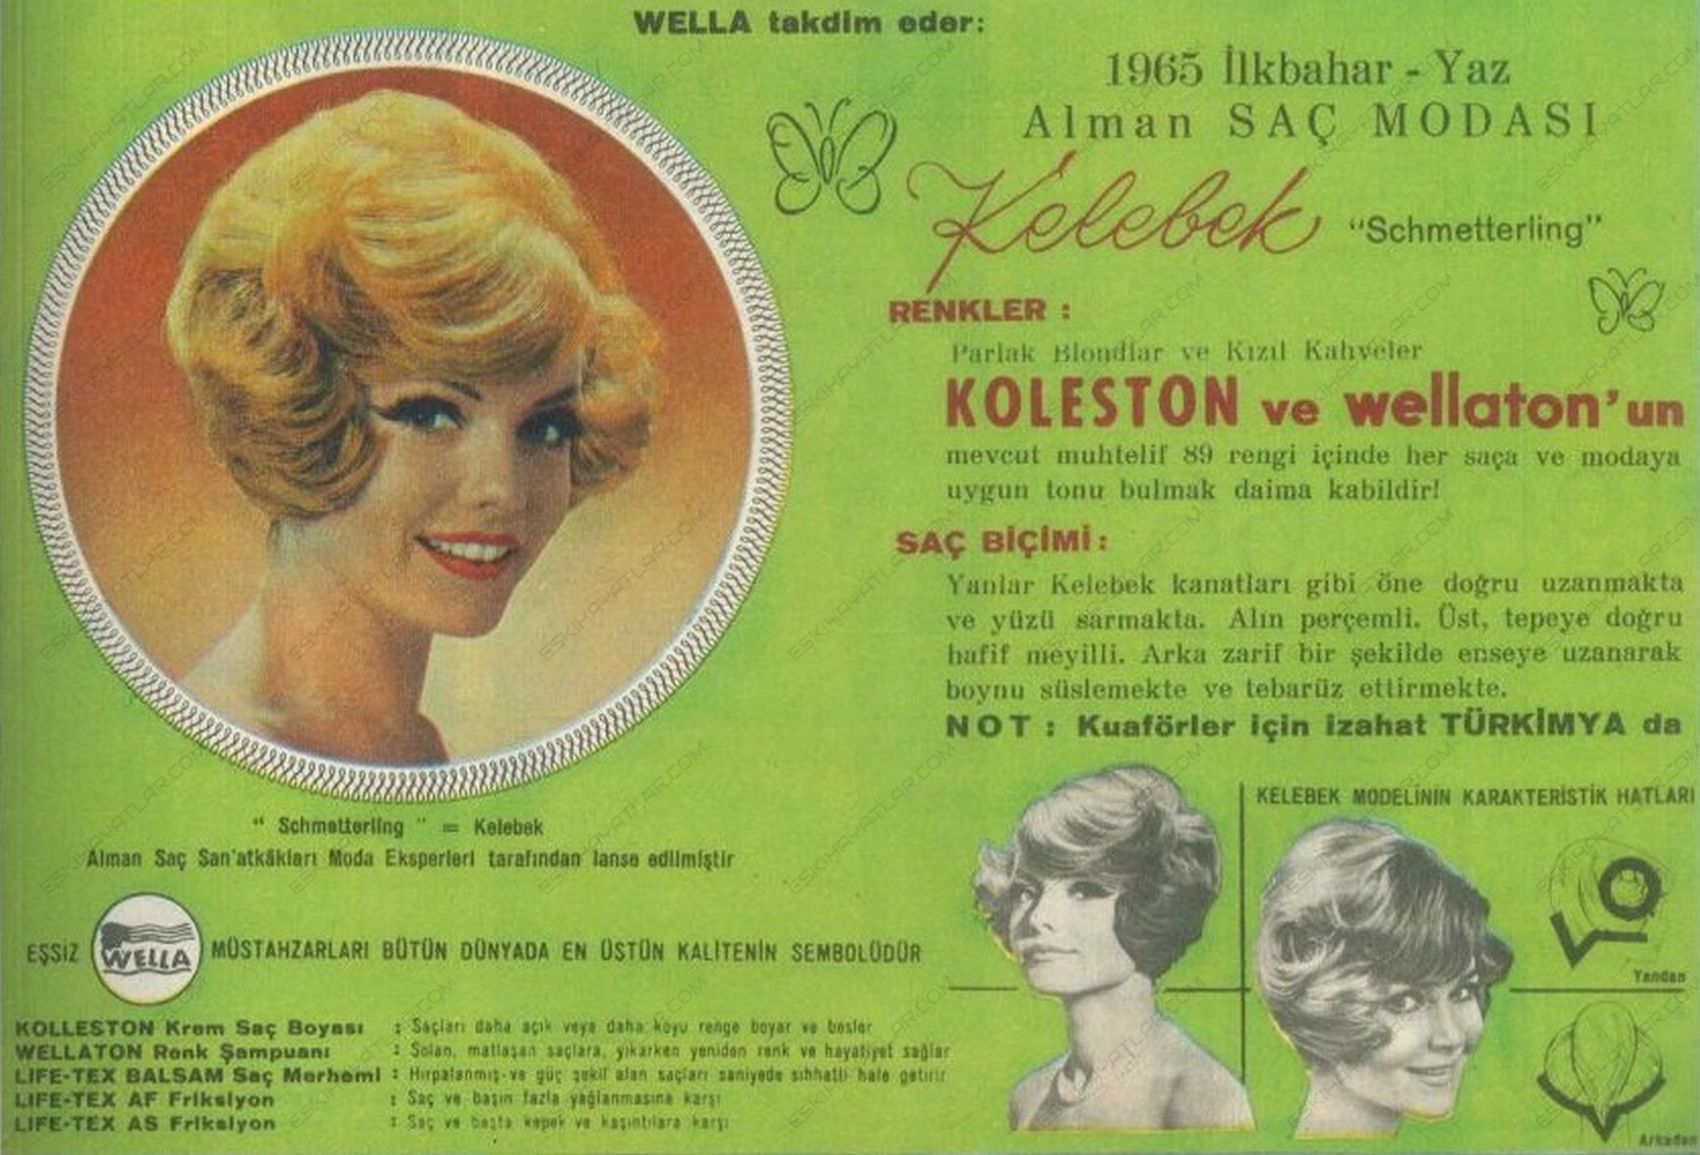 0424-wella-koleston-1965-yilinda-sampuan-reklamlari-wellaston-turkimya-reklamlari-schmetterling-kelebek-sac-stili-gorseli